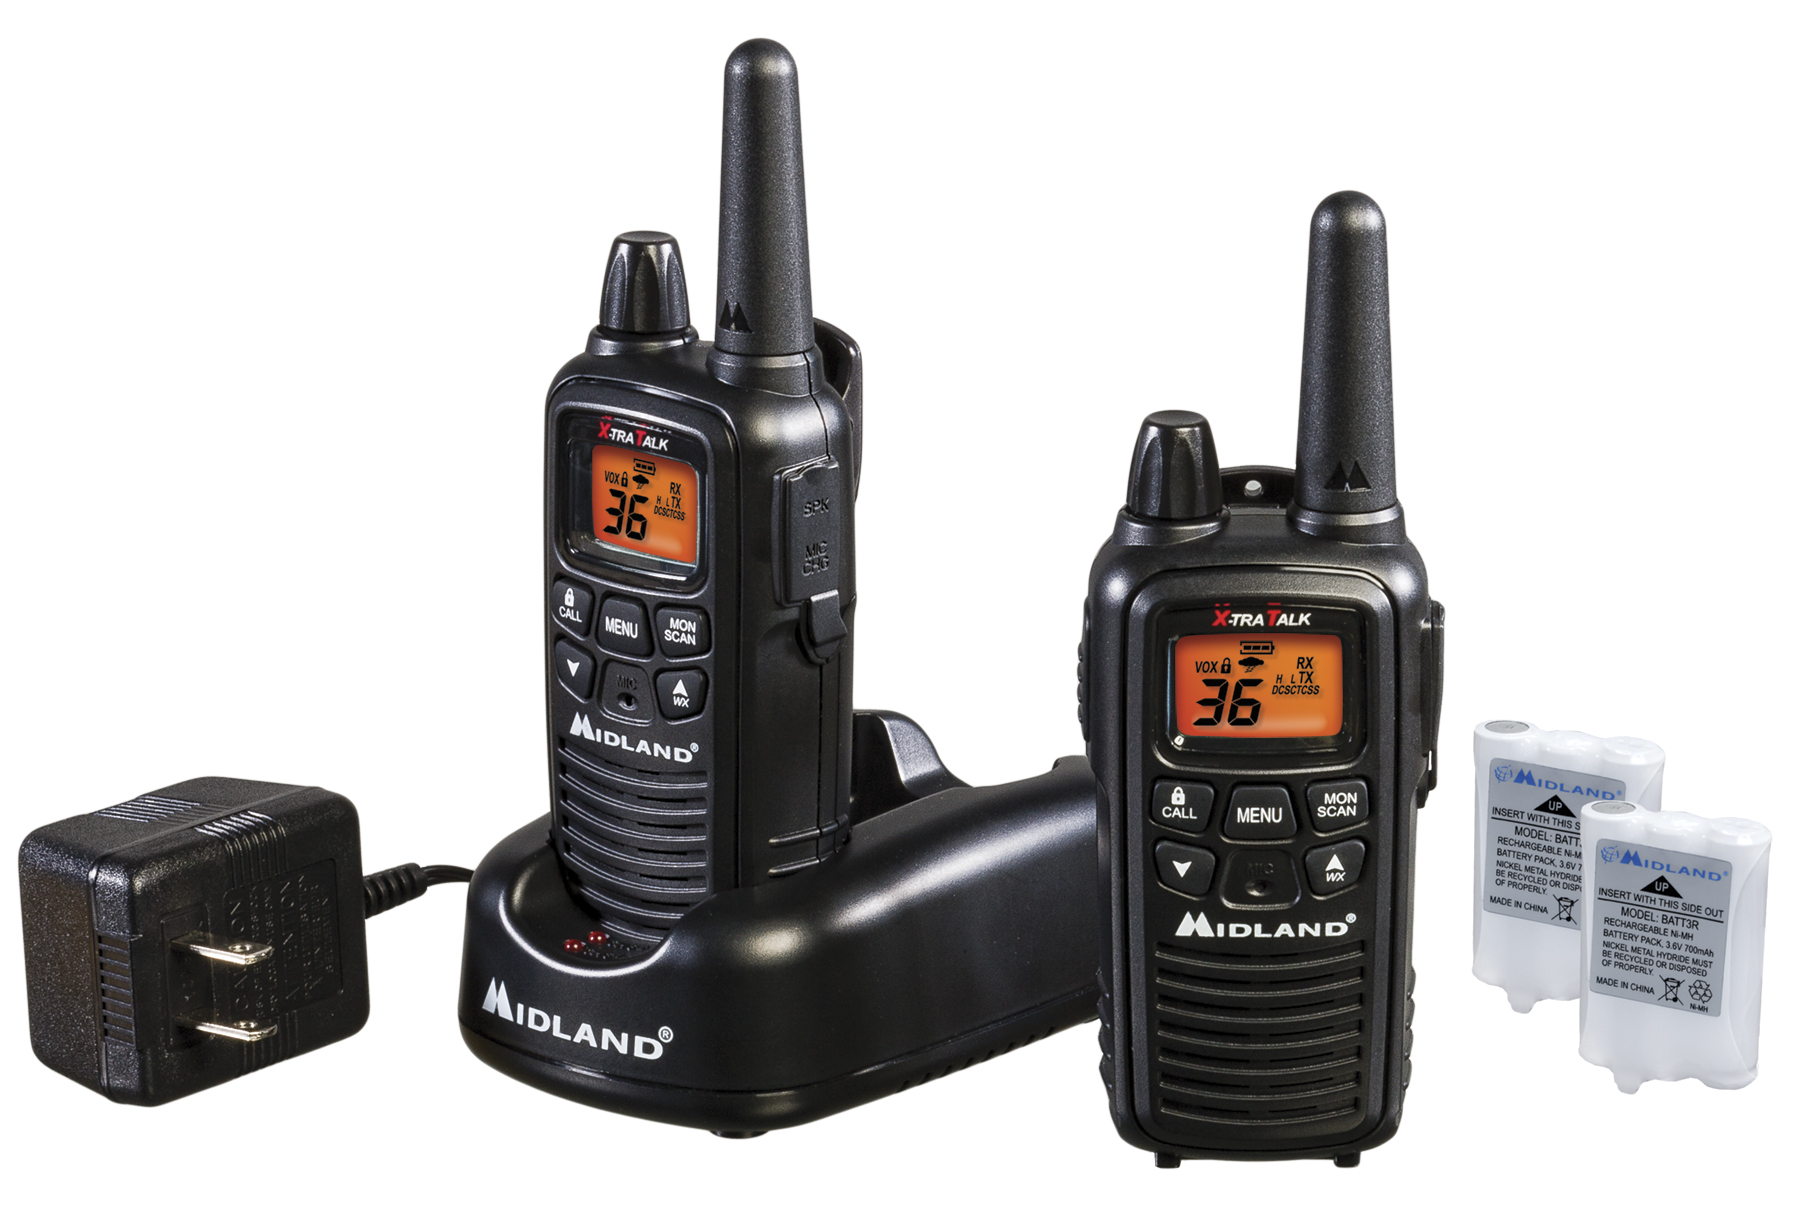 LXT600VP3 - Midland 36 Channel FRS/GMRS Handheld Radio Pair